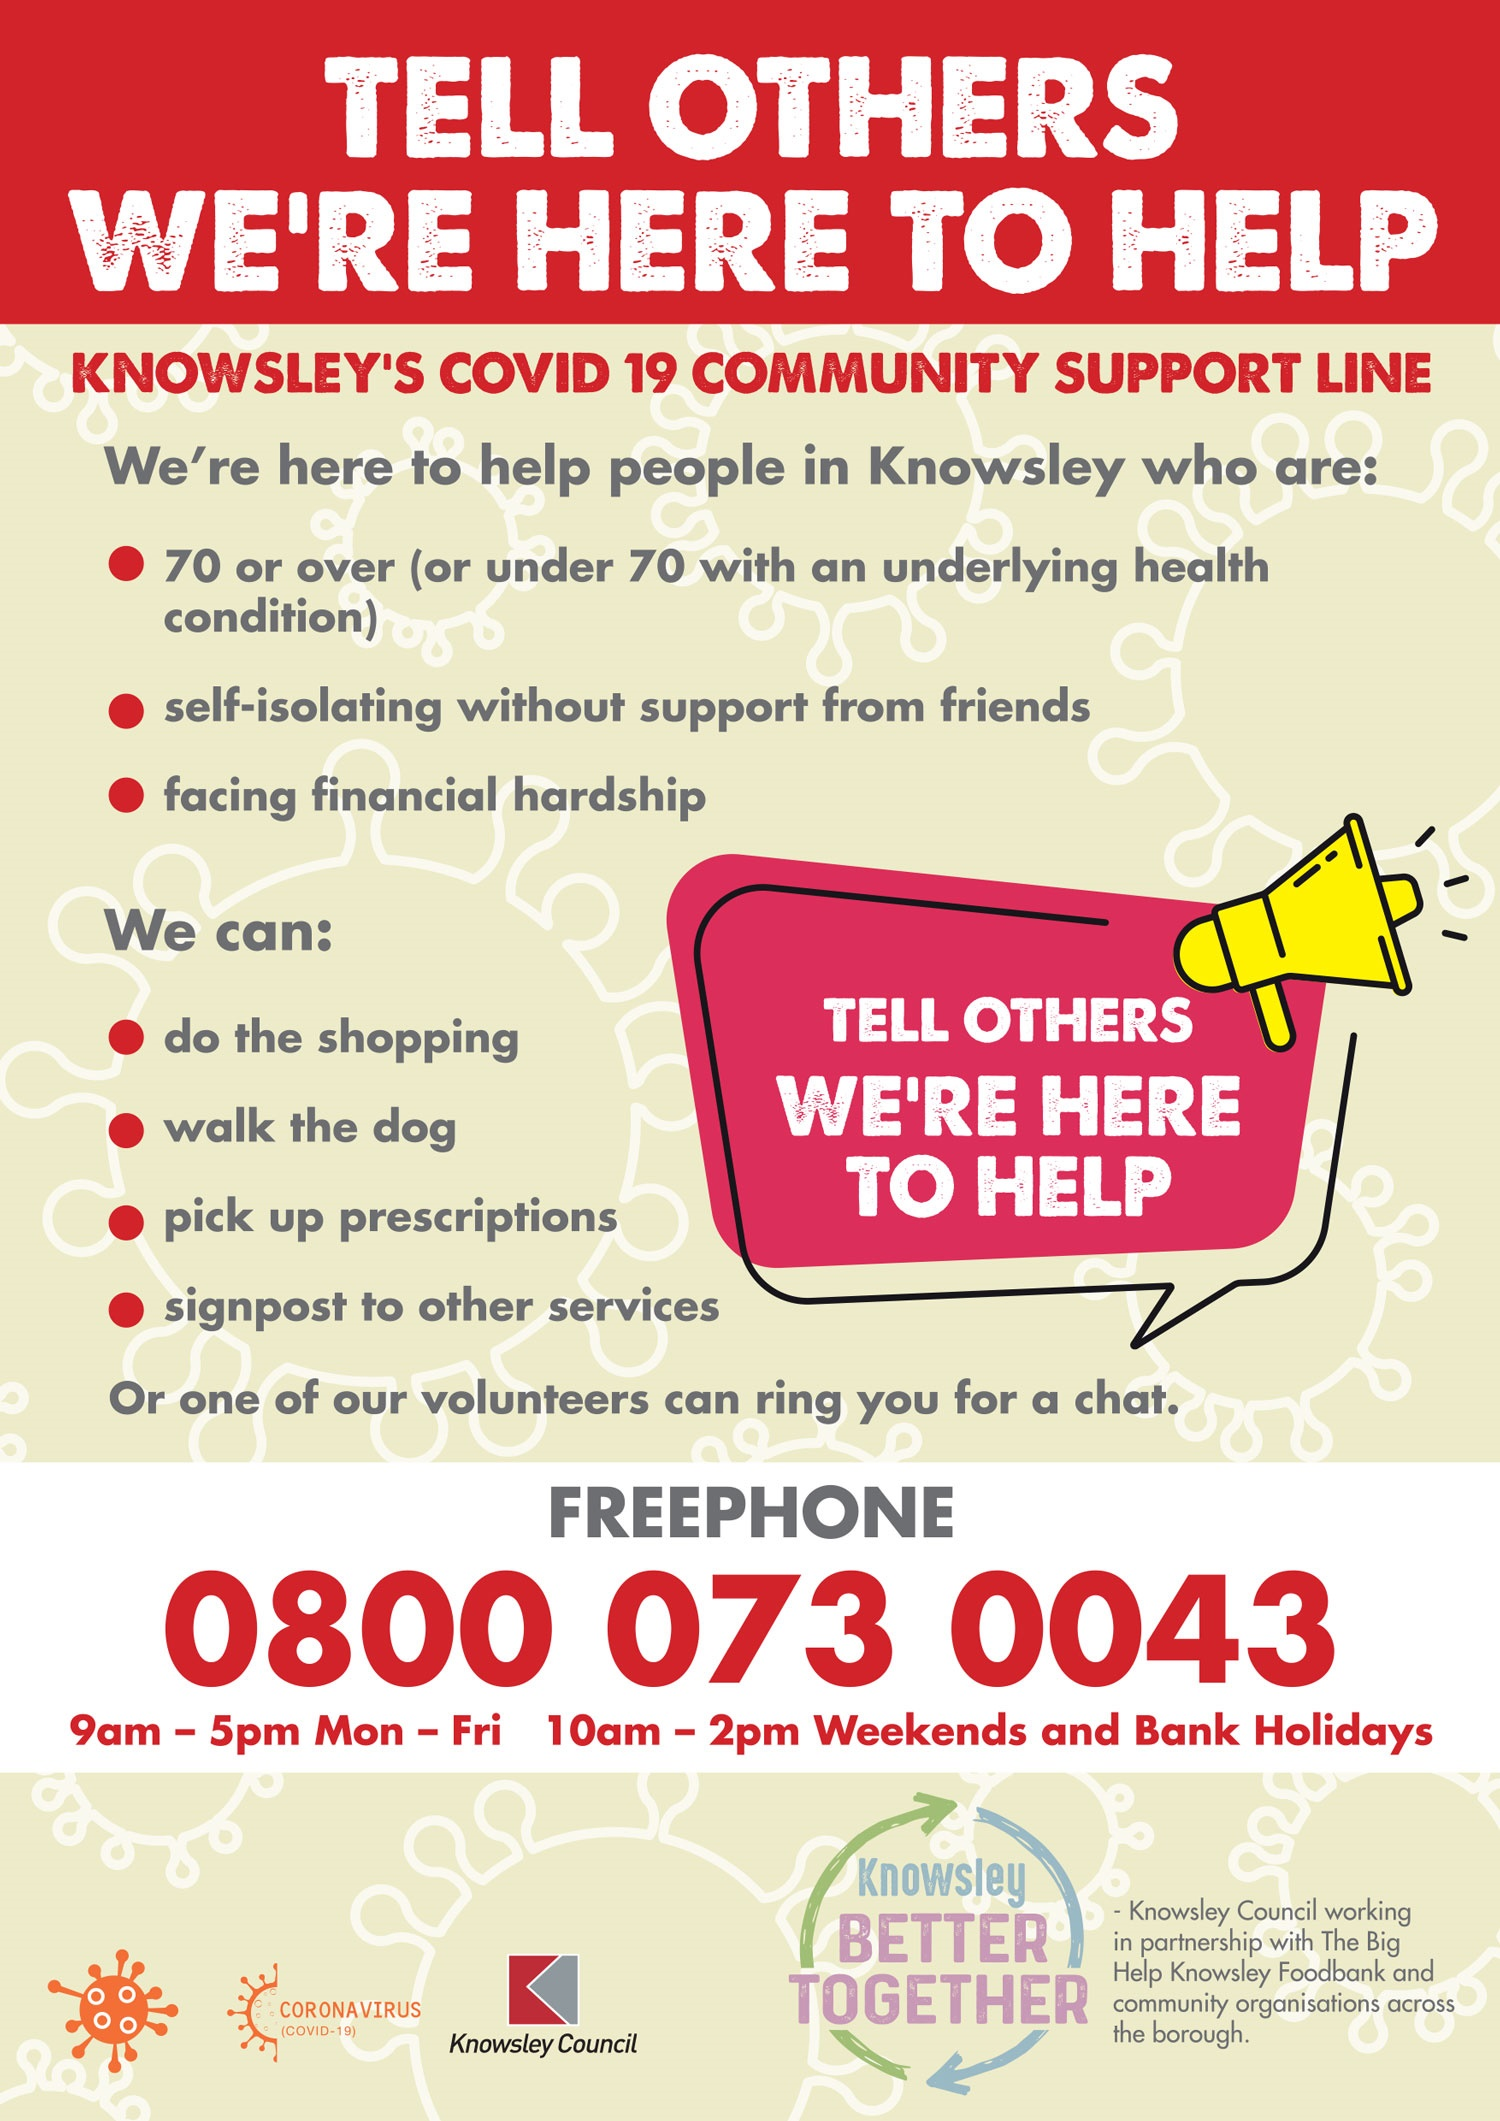 Poster displaying the support available to people in Knowsley who are 70 years of age and older, but also for people who are younger that have underlying long-term health issues.  Help offered for shopping, dog walking, prescritpion pick-up